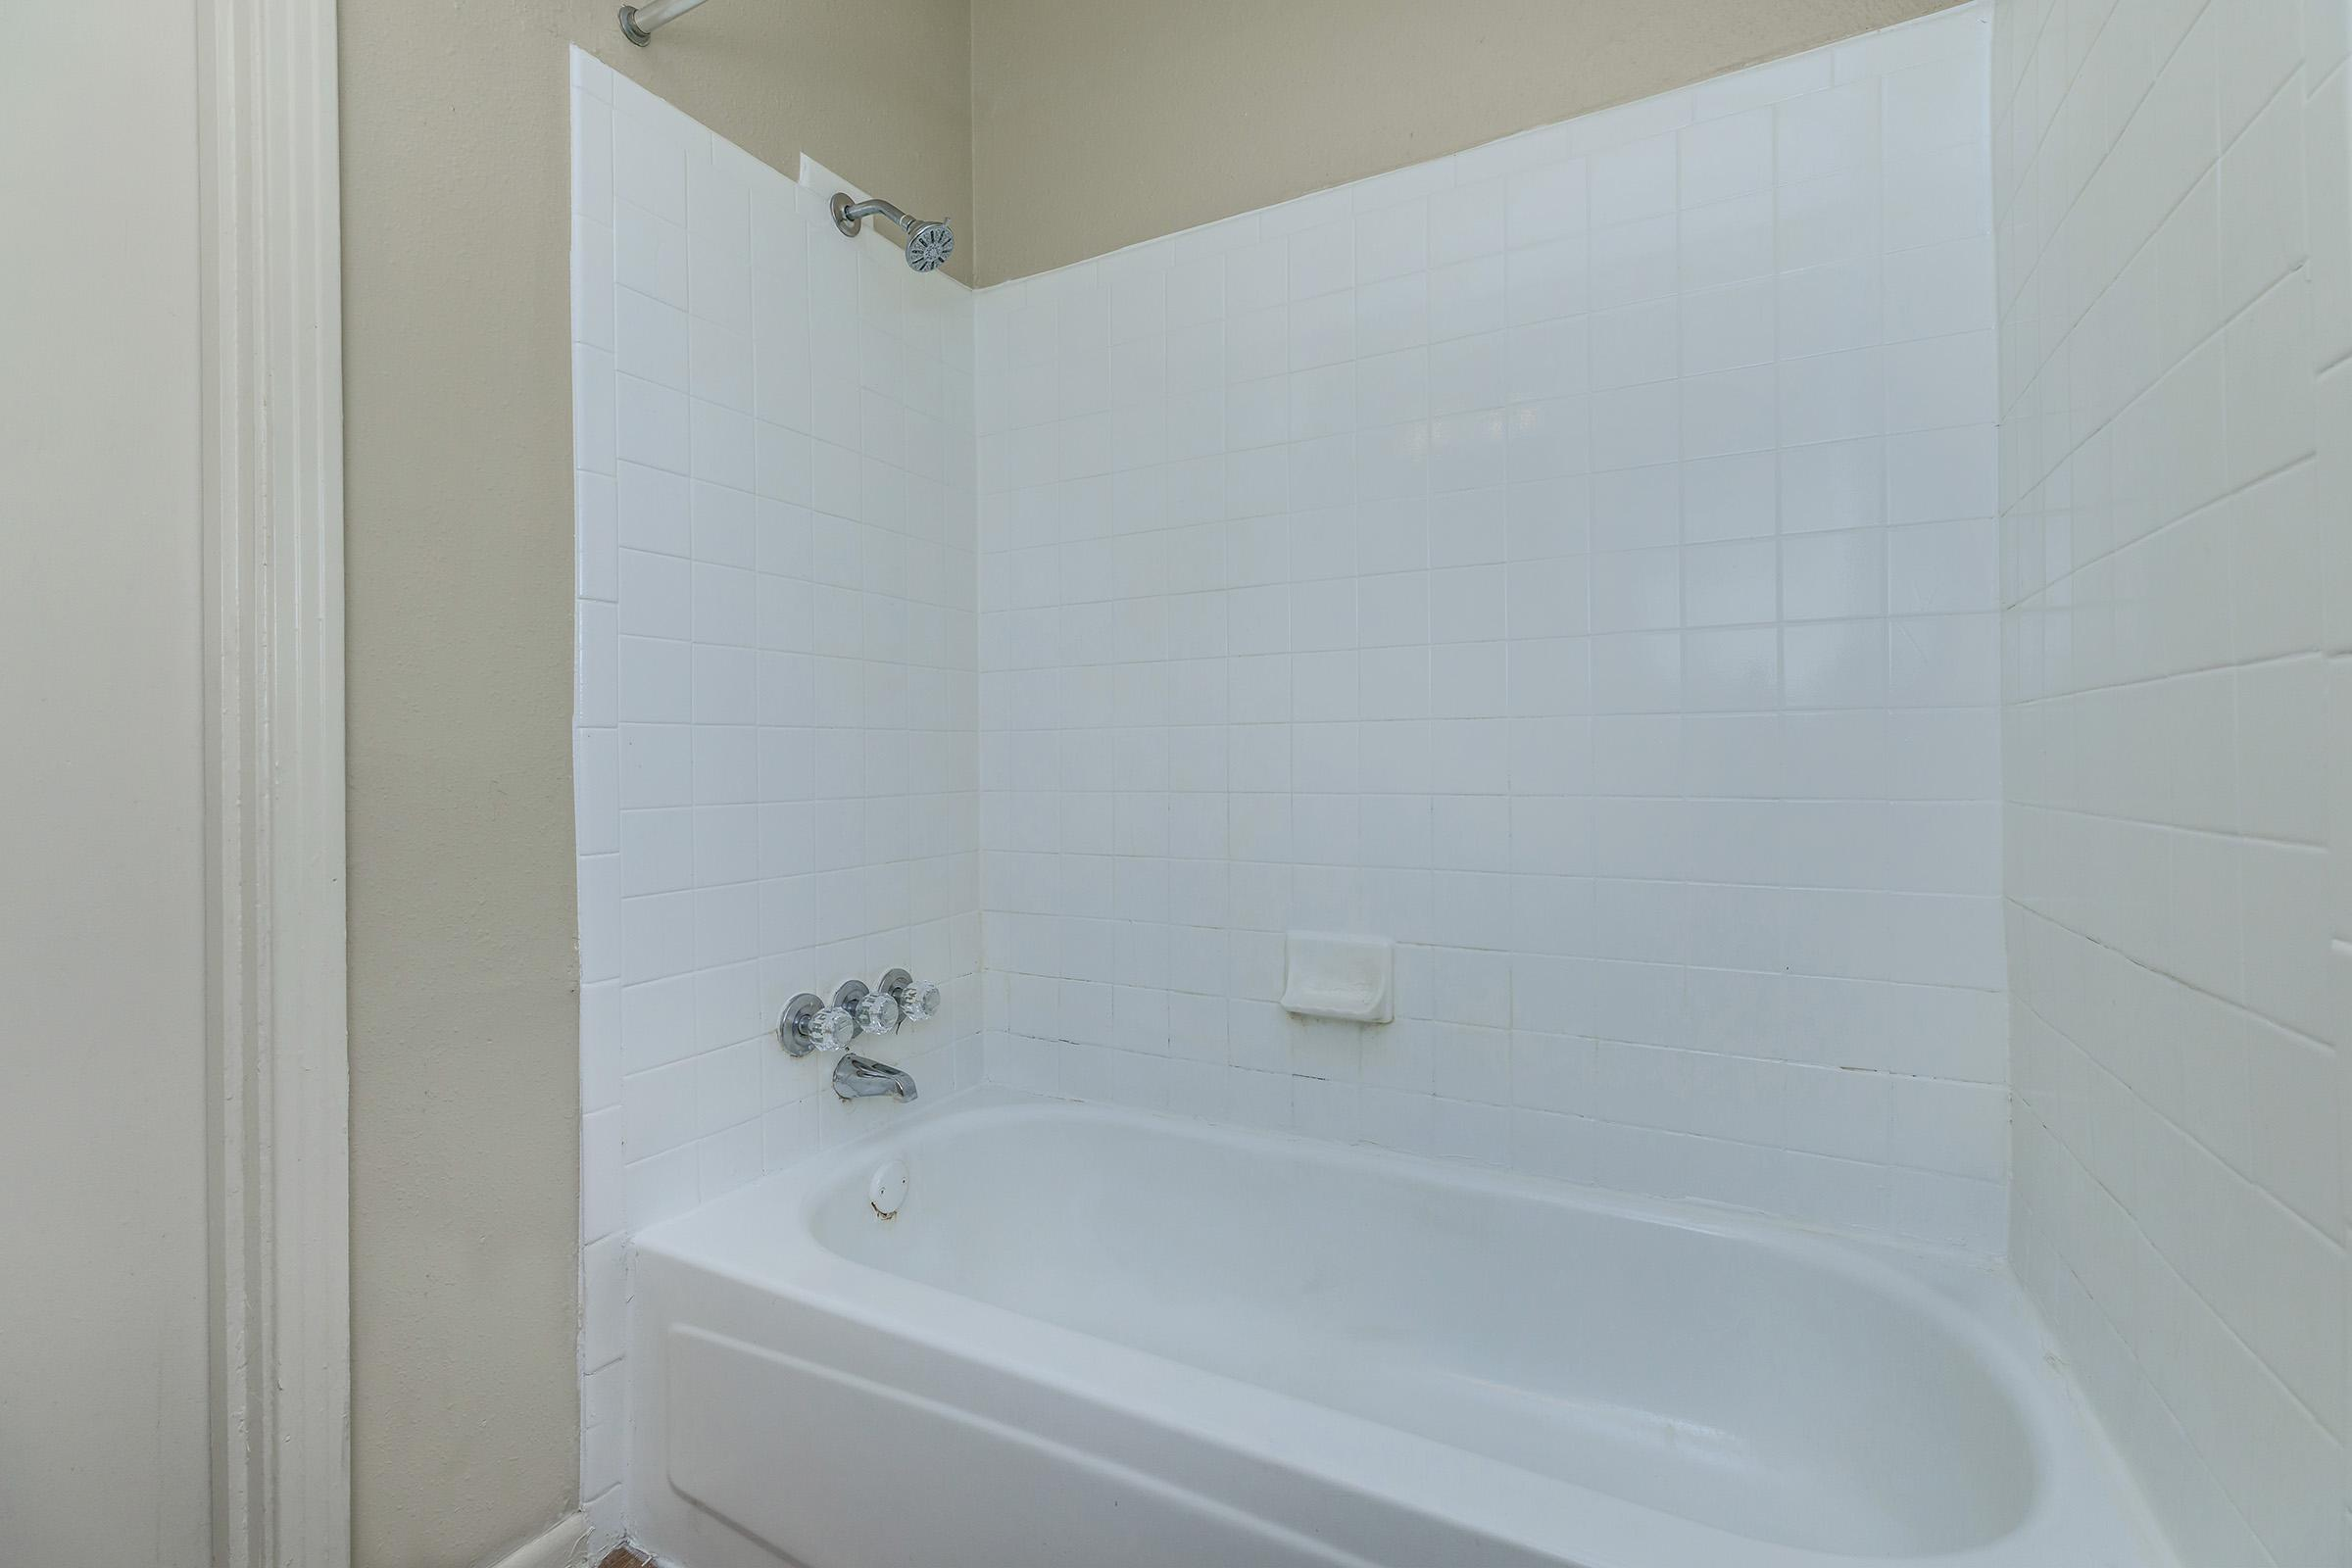 a room with a sink and a white tub sitting next to a shower